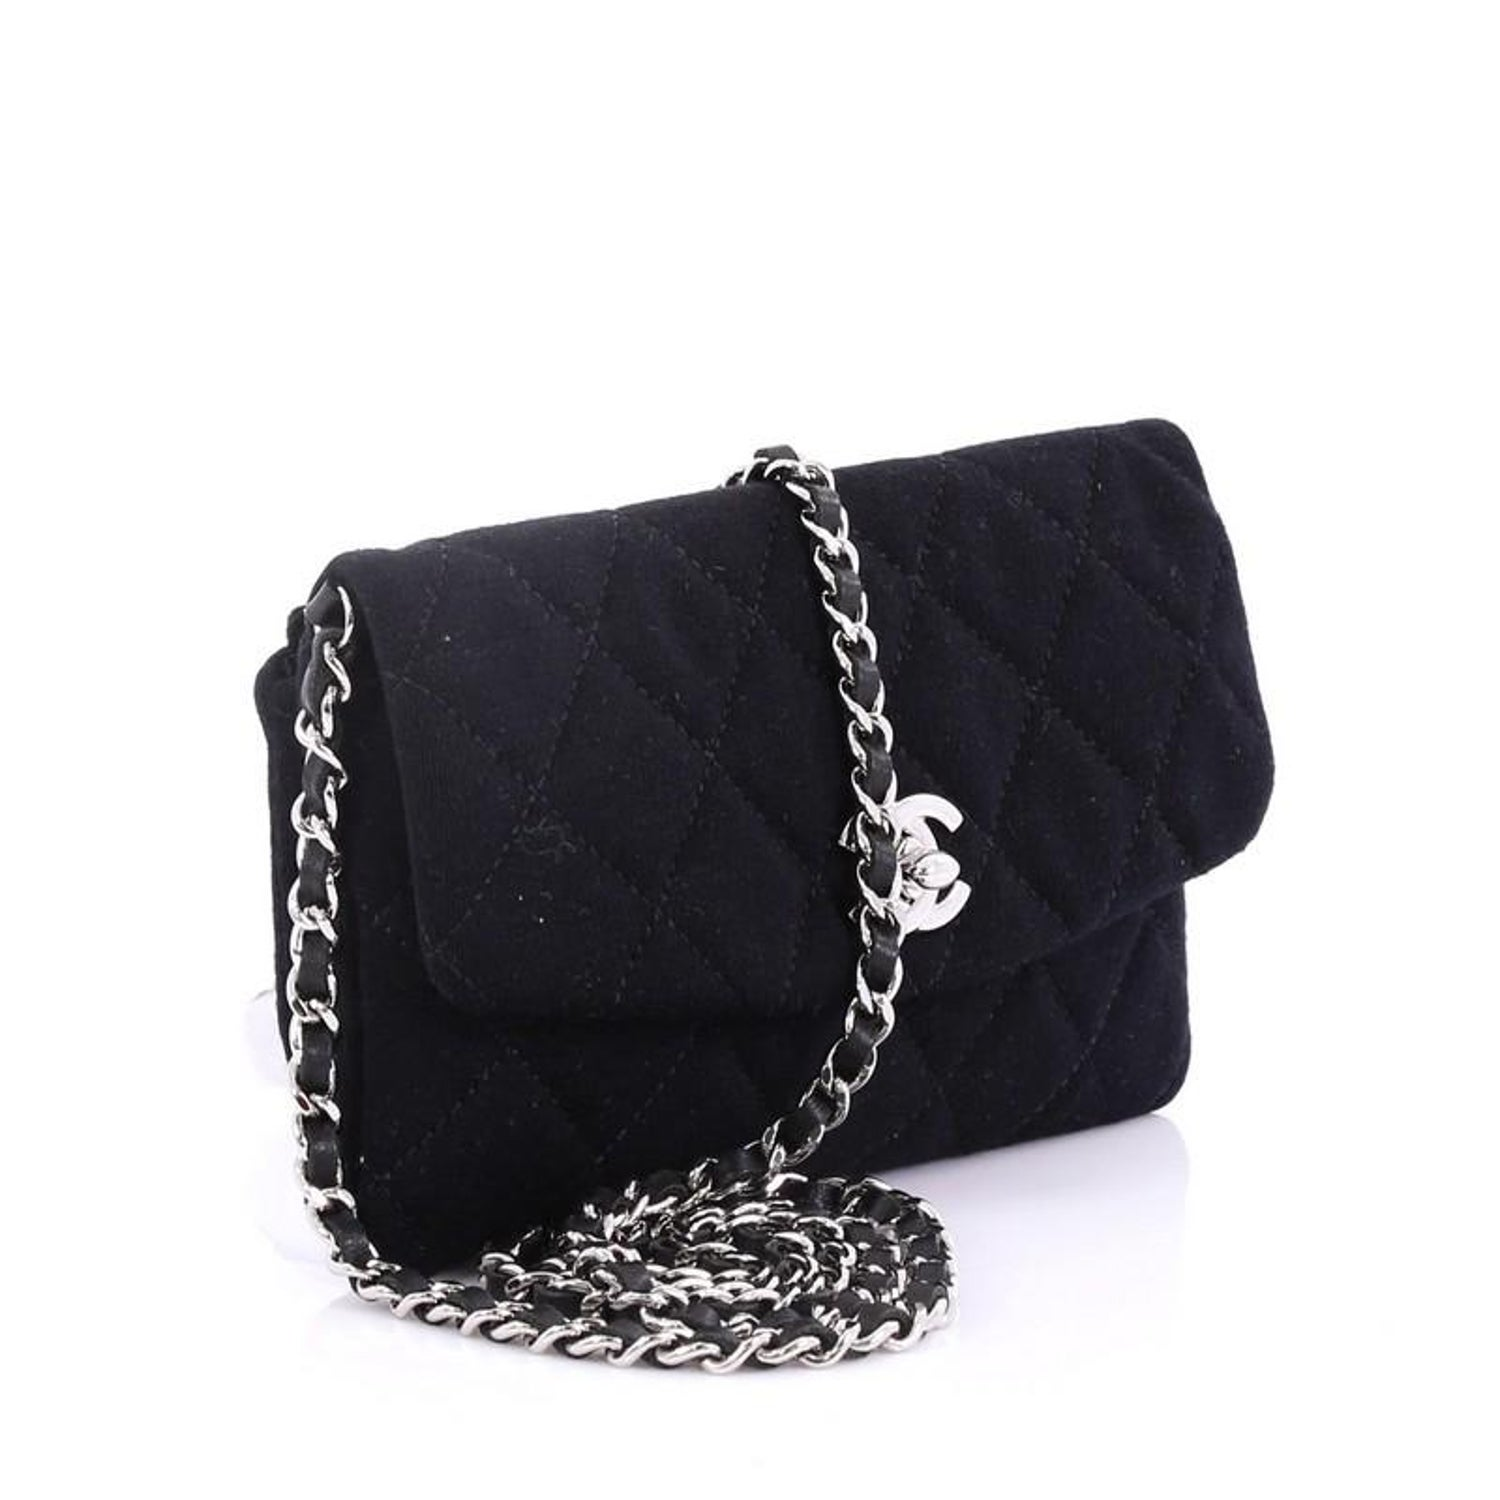 4ecbf38d9ddf Chanel VIP Chain Crossbody Quilted Jersey at 1stdibs